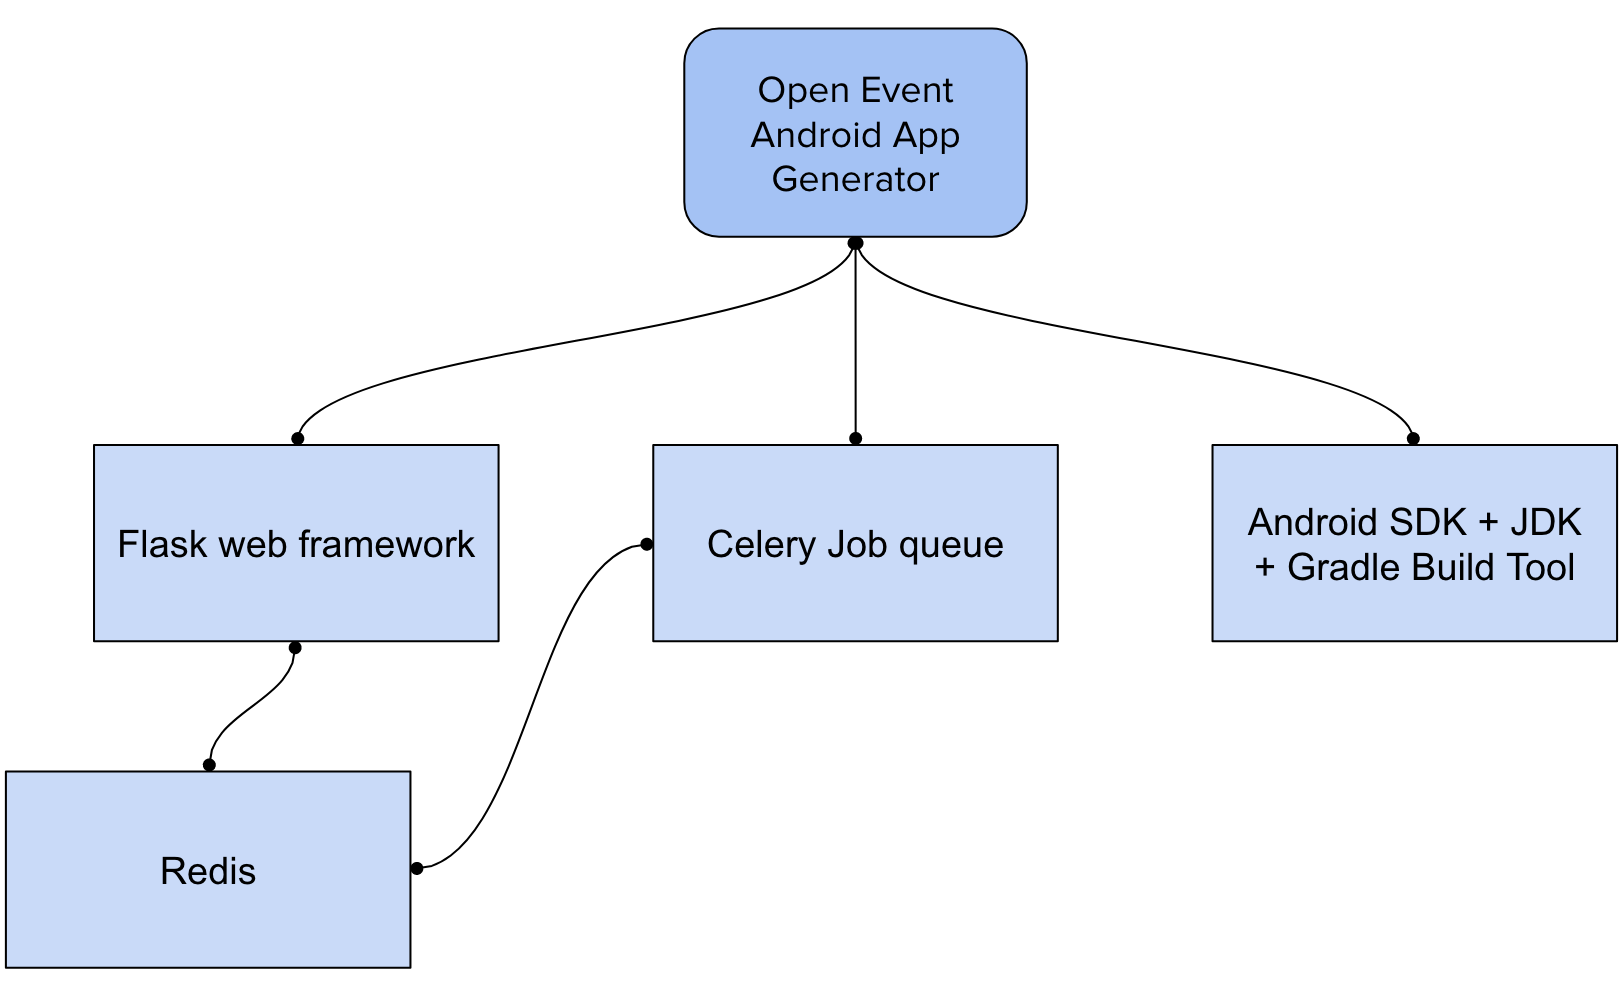 The Open Event Ecosystem